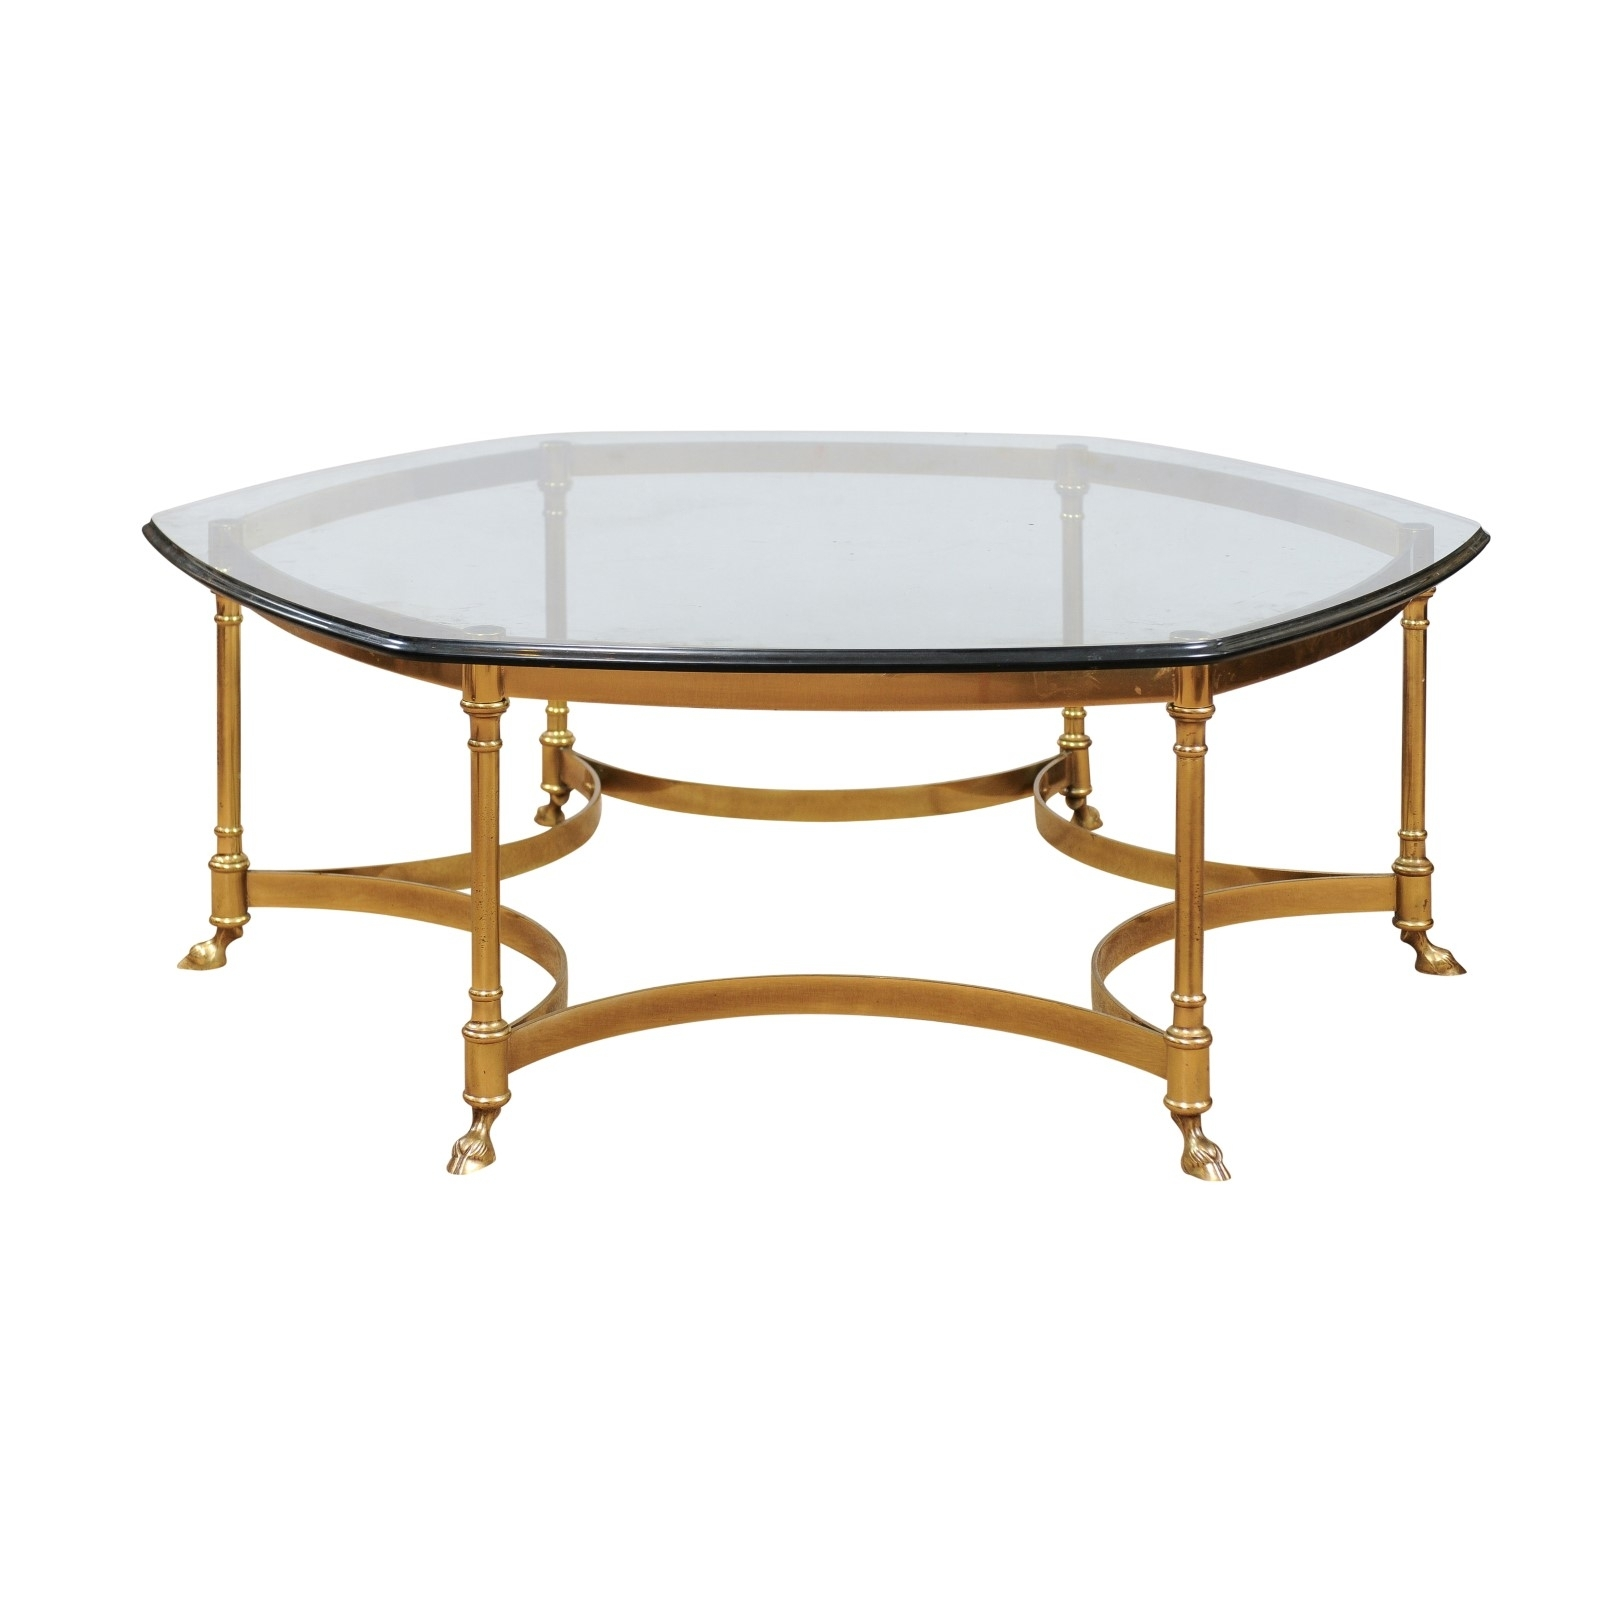 Brass Coffee Tables - Coffee Table Ideas pertaining to Darbuka Brass Coffee Tables (Image 7 of 30)